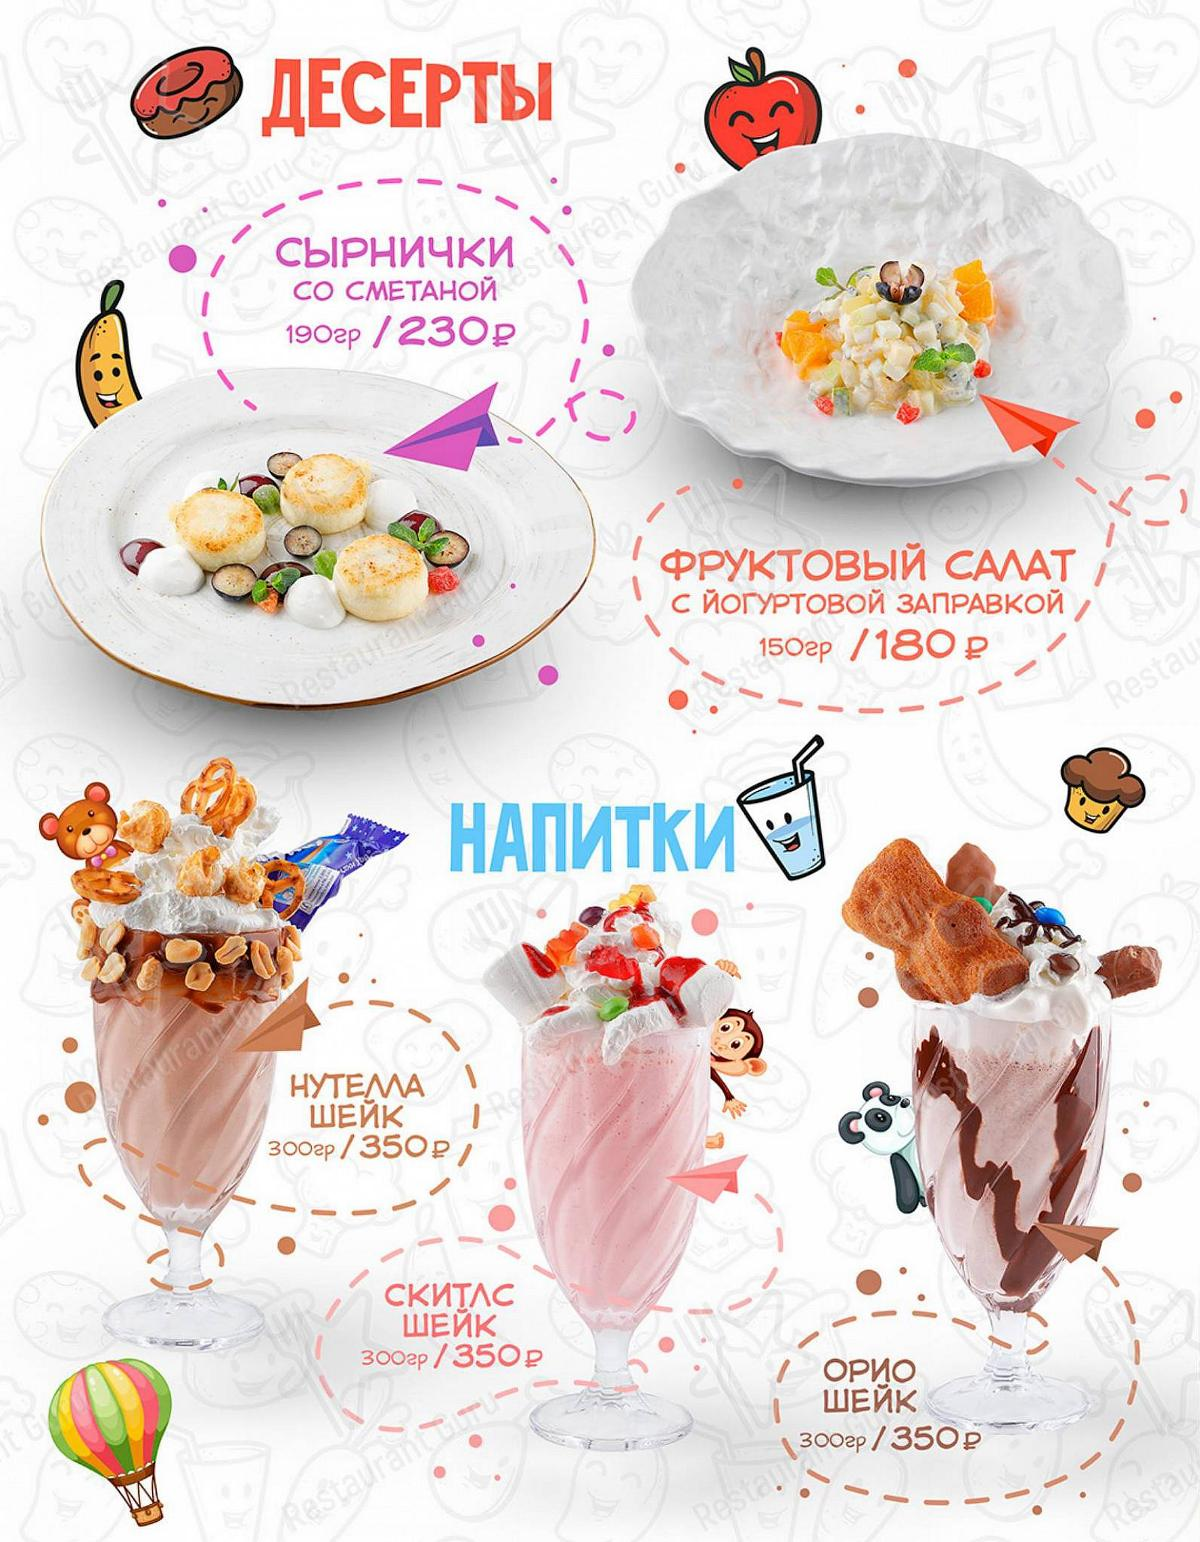 MOST menu - dishes and beverages